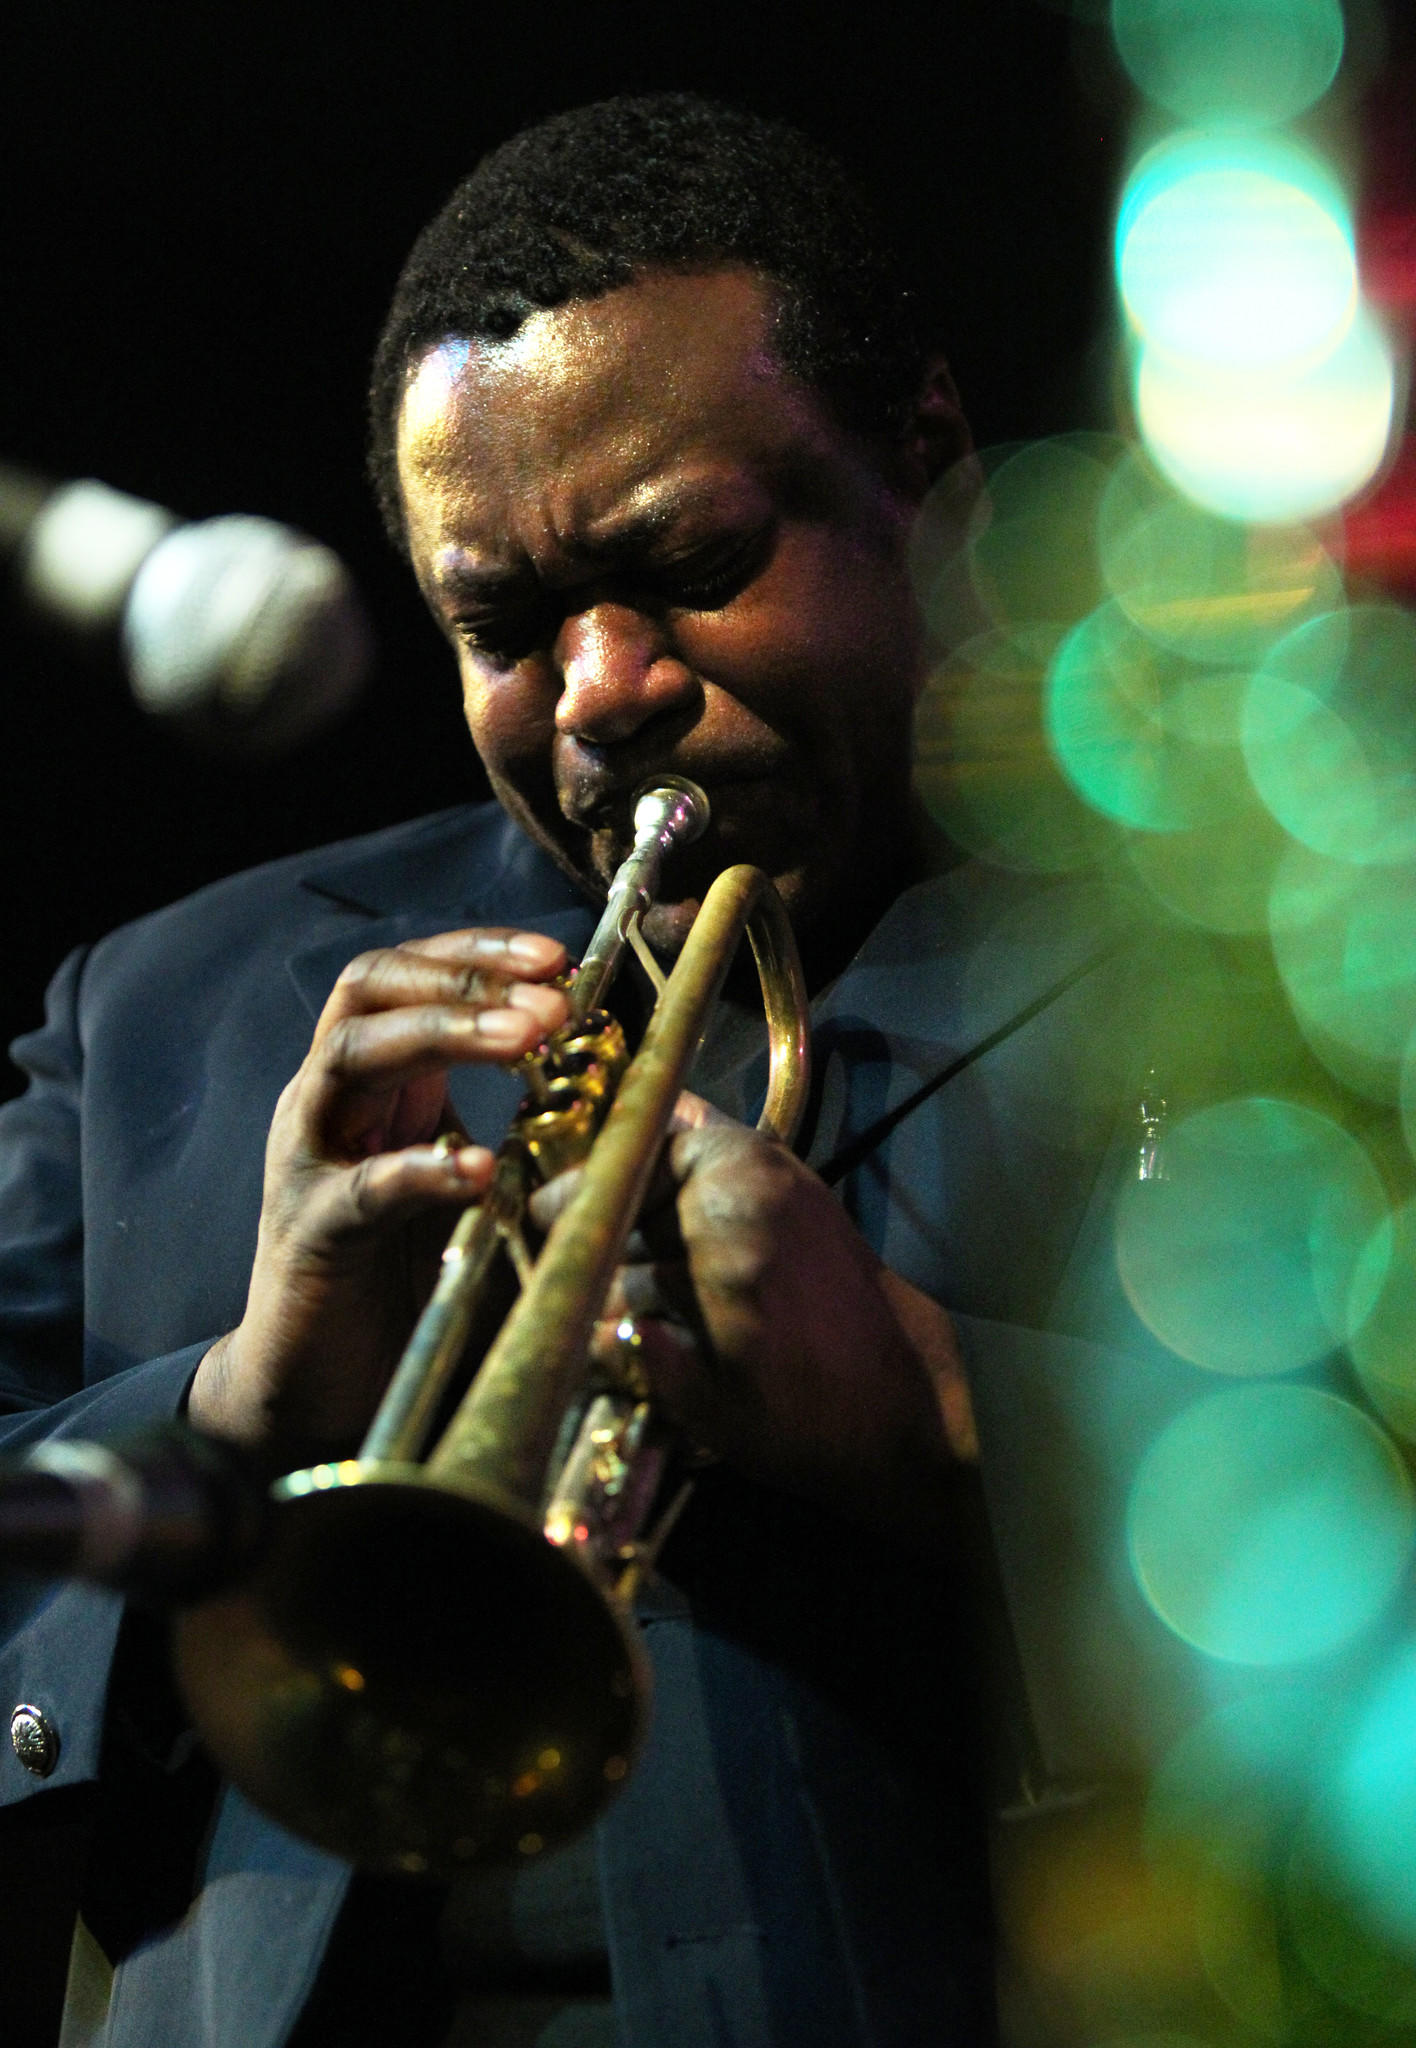 Trumpet player Wallace Roney performs at Jazz Showcase in Chicago.